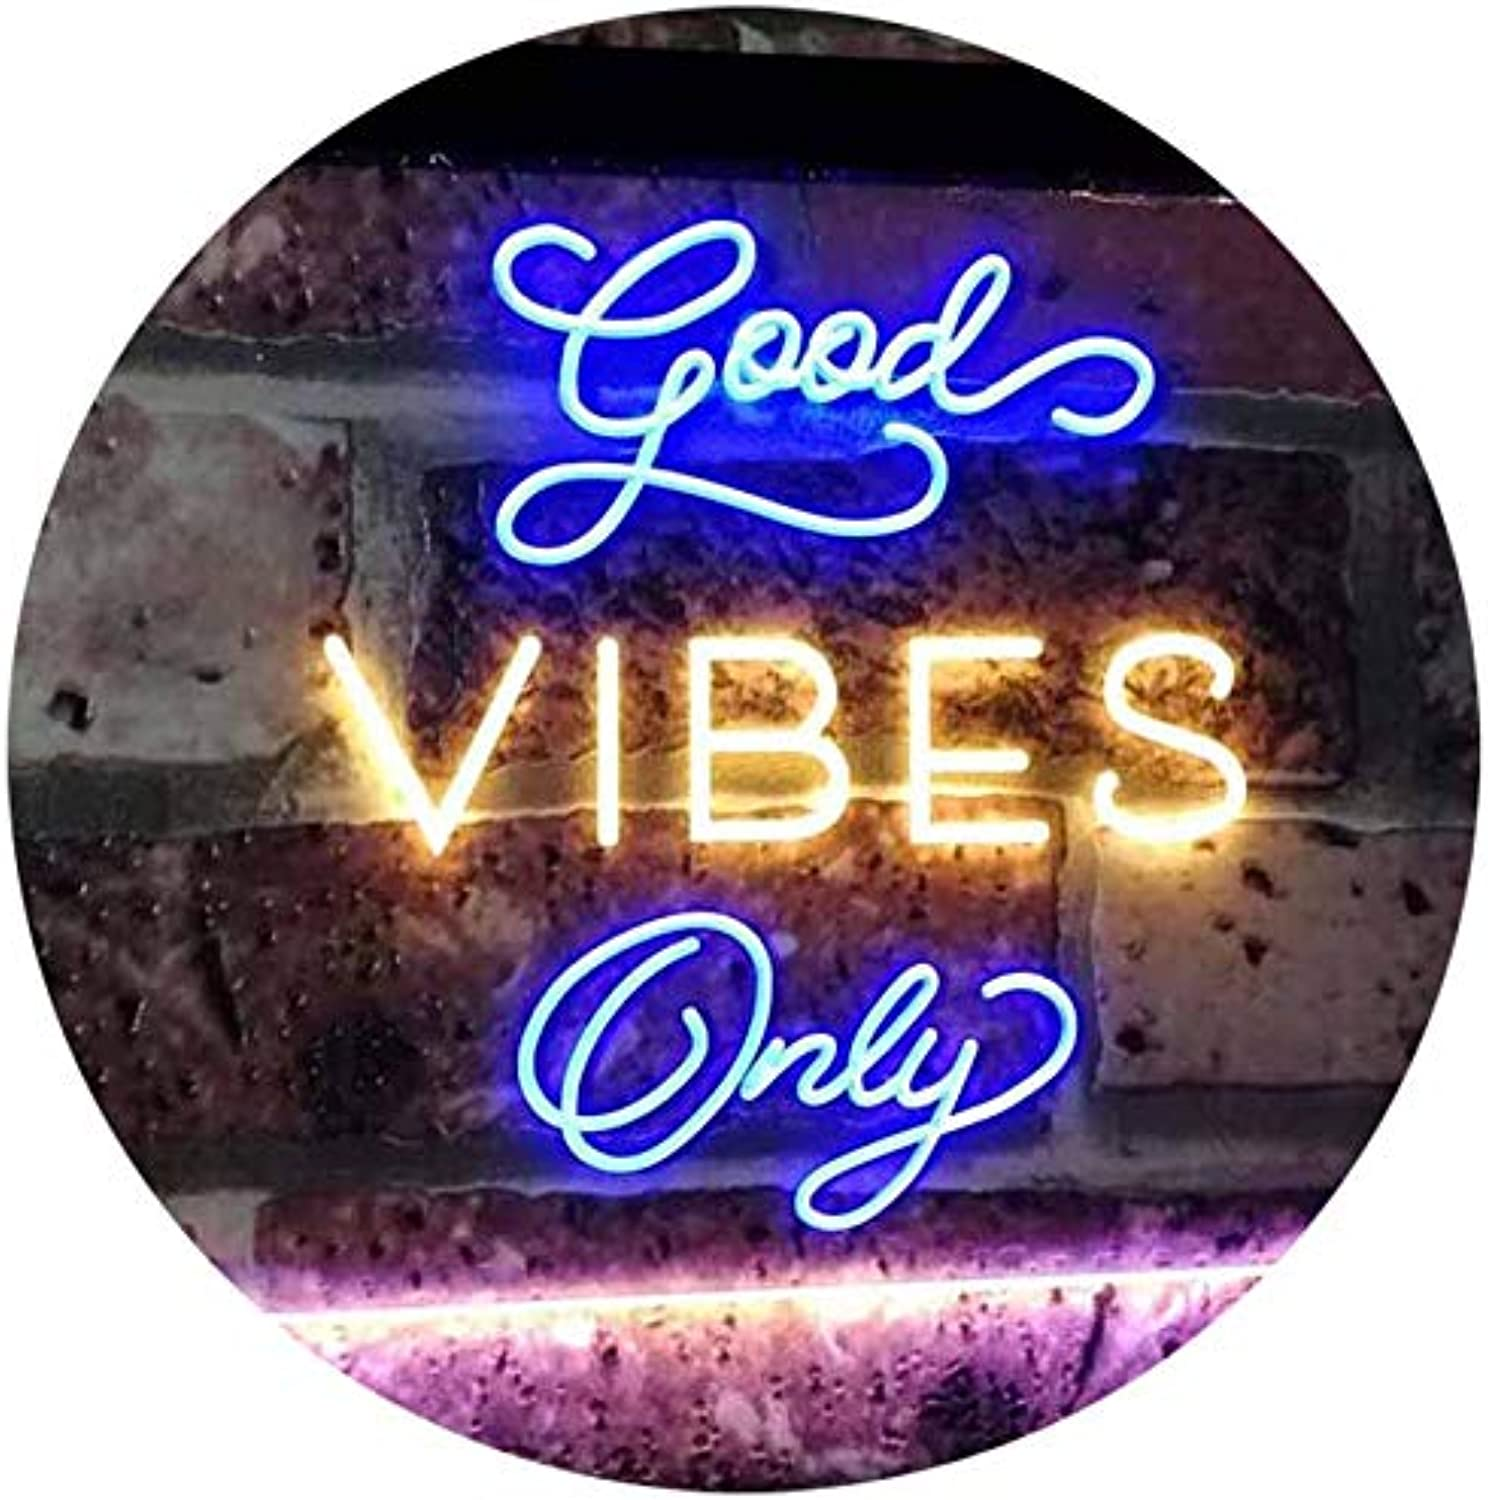 ADVPRO Good Vibes Only Home Bar Disco Room Display Dual Farbe LED Barlicht Neonlicht Lichtwerbung Neon Sign Blau & Gelb 400mm x 300mm st6s43-i3076-by